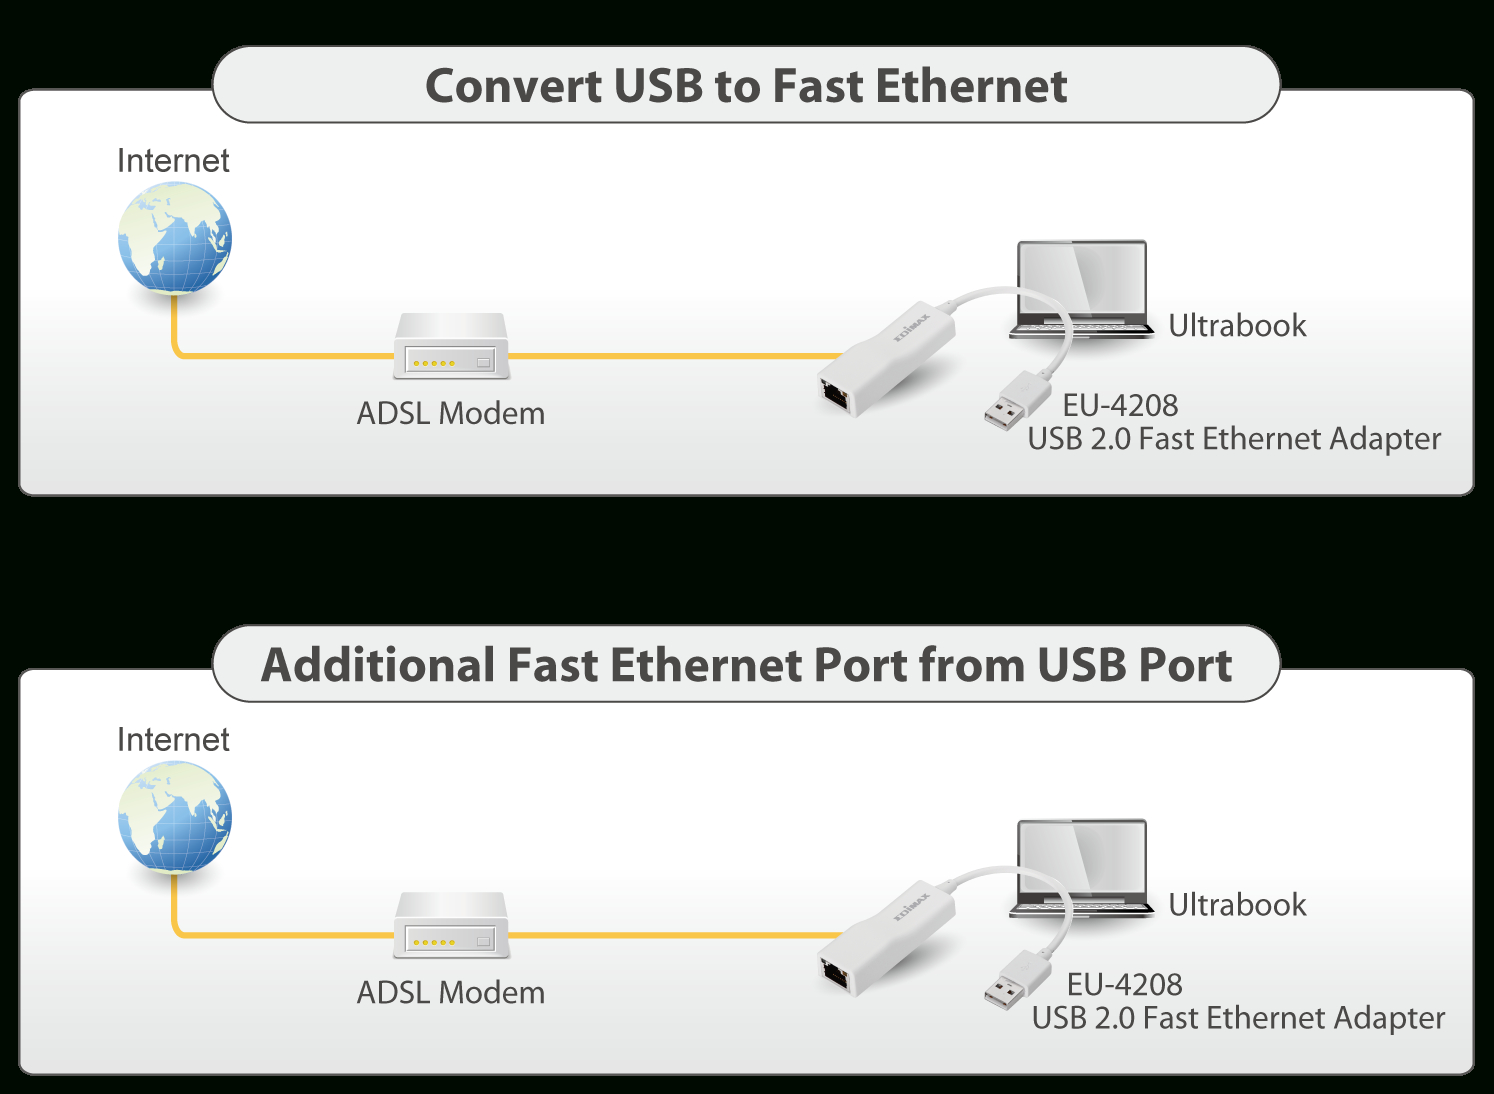 Usb 2.0 Fast Ethernet Adapter | Edimax - Edimax - Usb To Ethernet Adapter Wiring Diagram